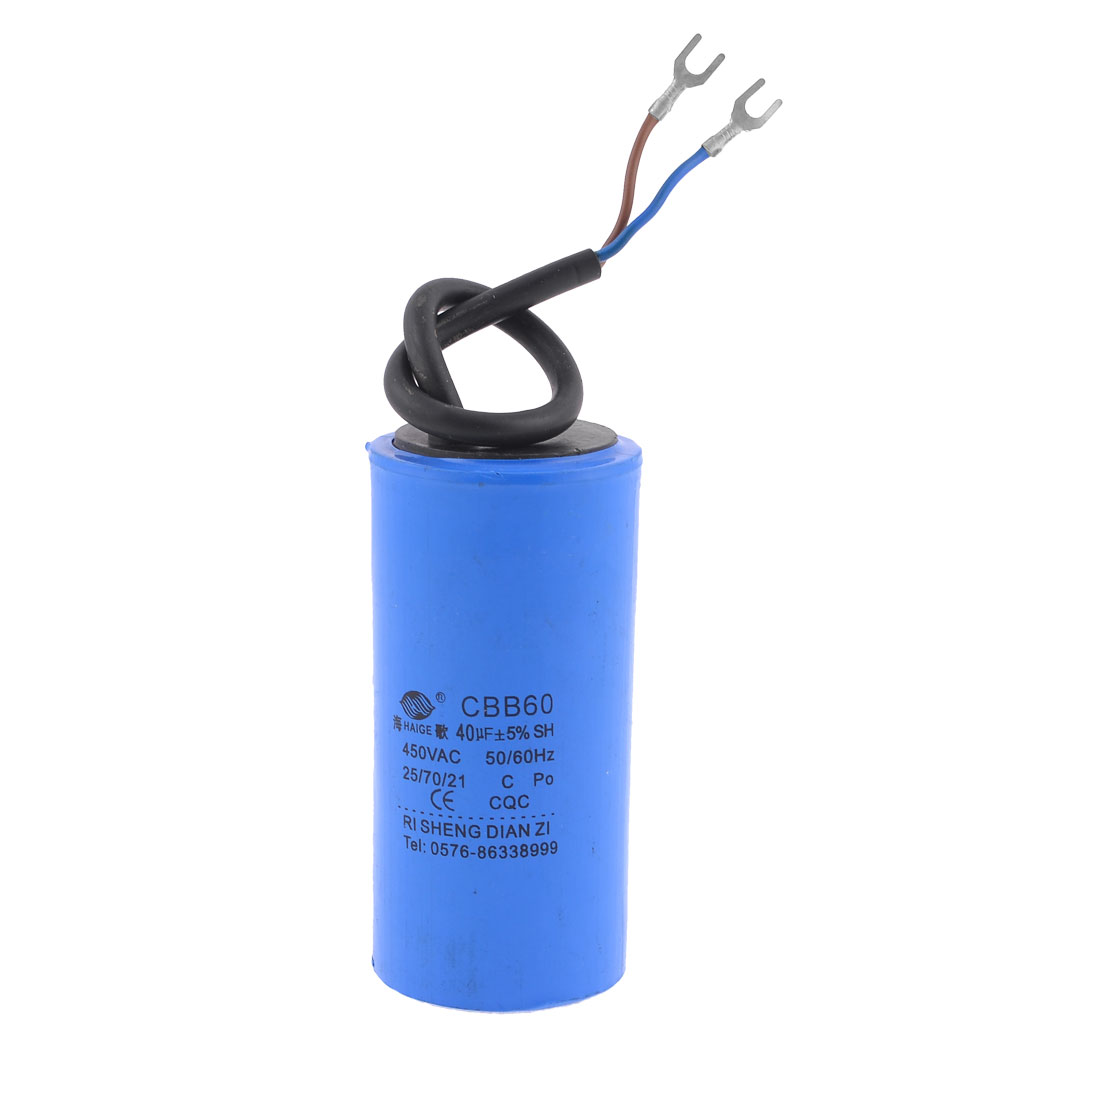 CBB60 AC 450V 40uF Air Compressor Electrolytic Capacitor Blue